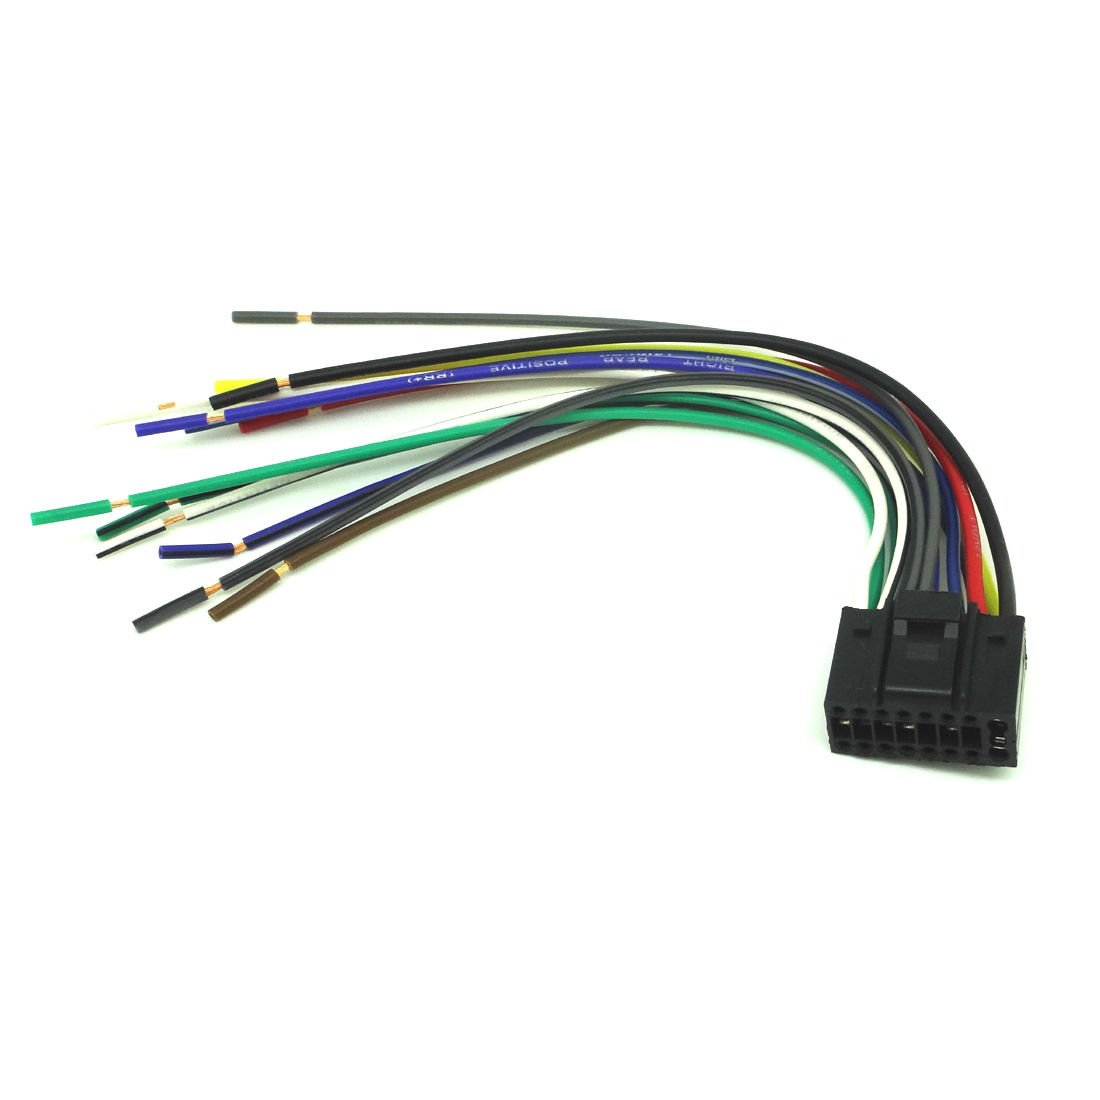 Wiring Diagram For Kenwood Kvt 617dvd : Kenwood kvt dvd wiring harness diagram stereo